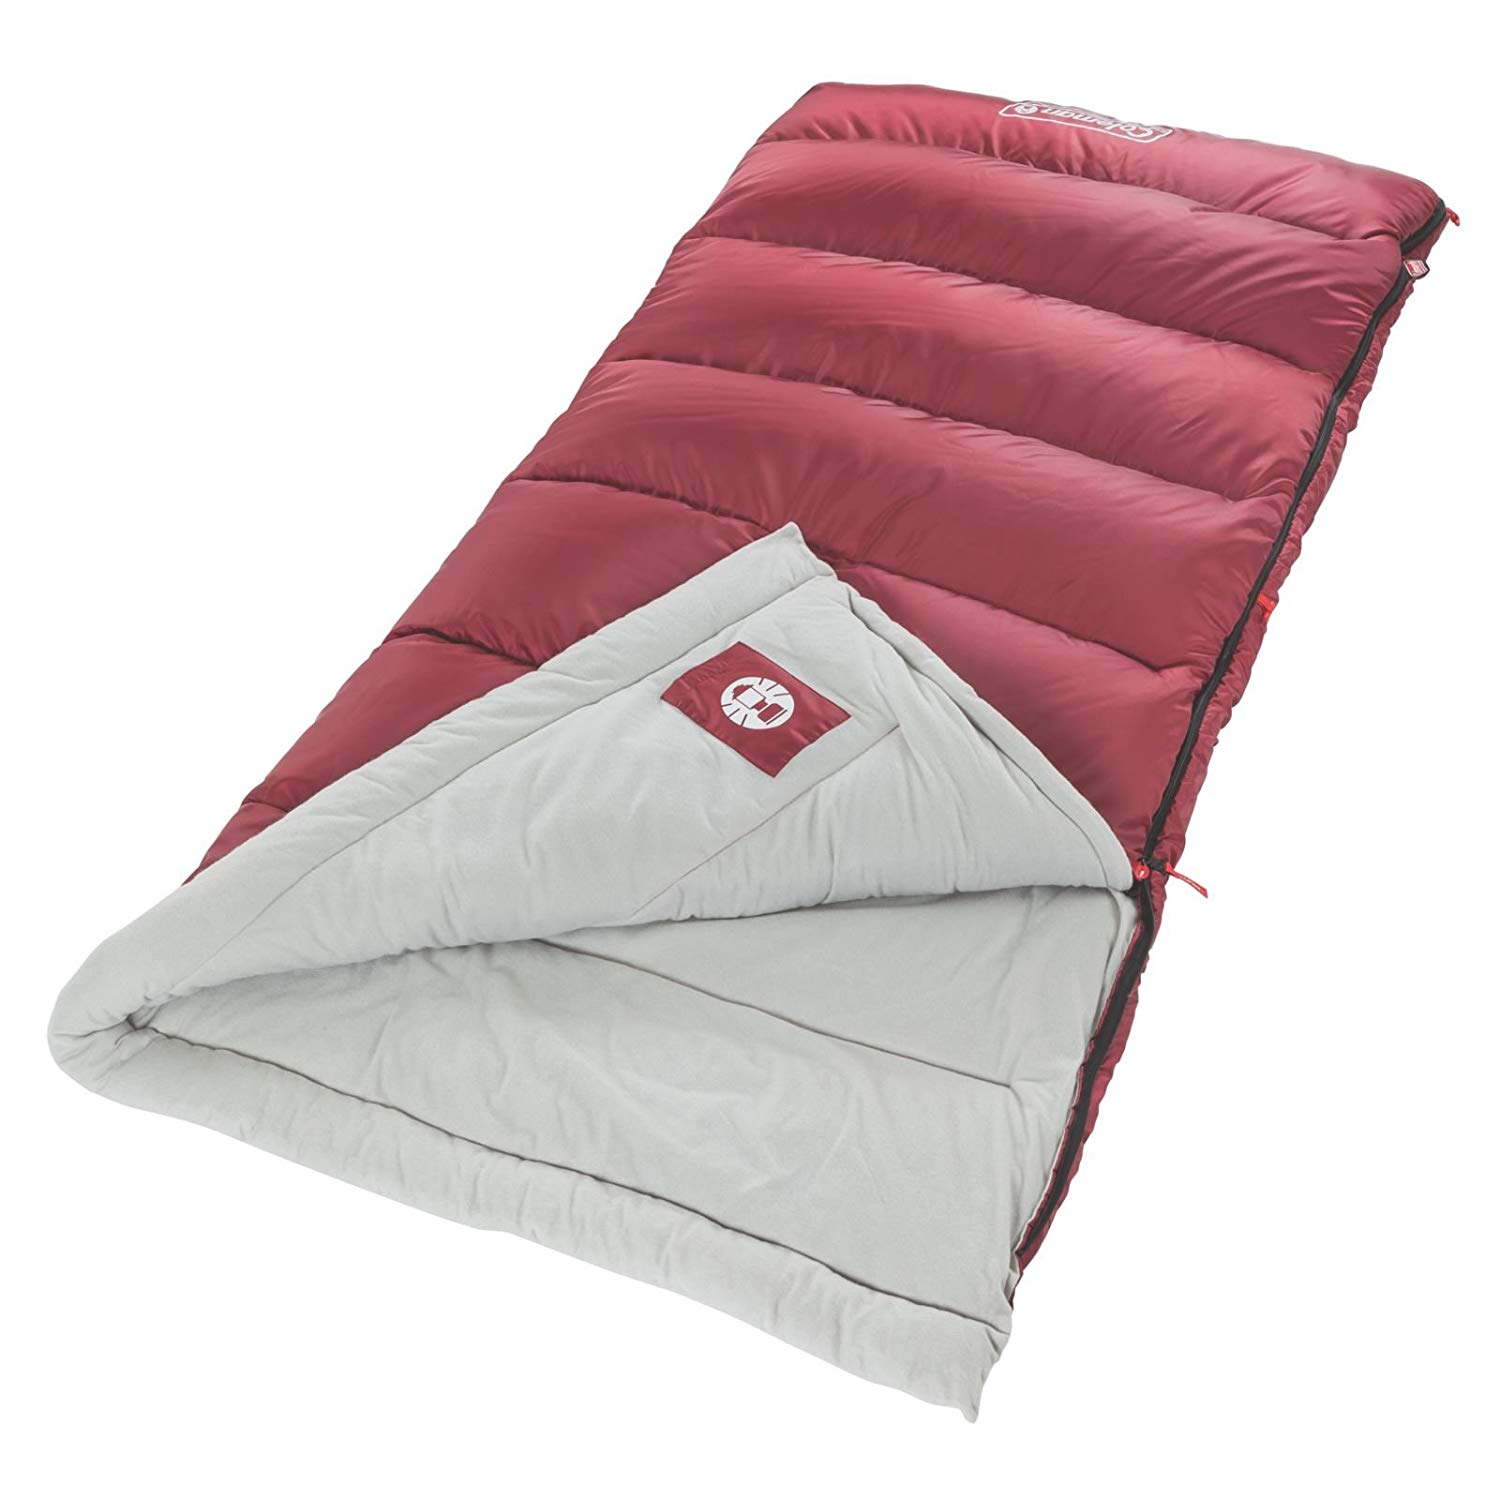 An image of Coleman Autumn Glen 2000029008 30 Degree Sleeping Bag